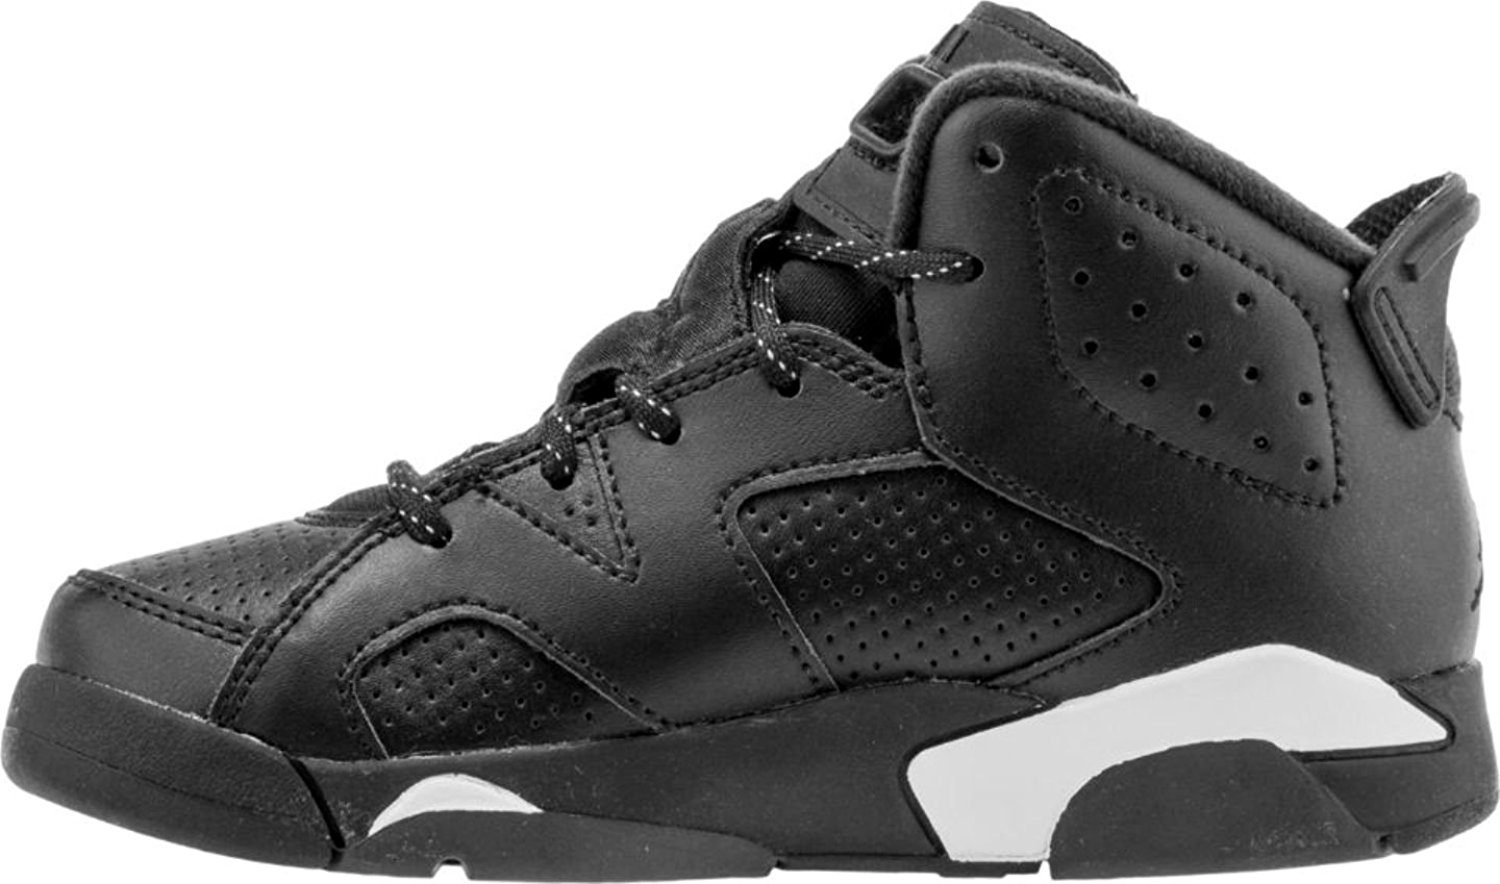 Nike Air Jordan 6 Retro Black Cat BP Preschool Kids Black White 384666-020 (1.5)